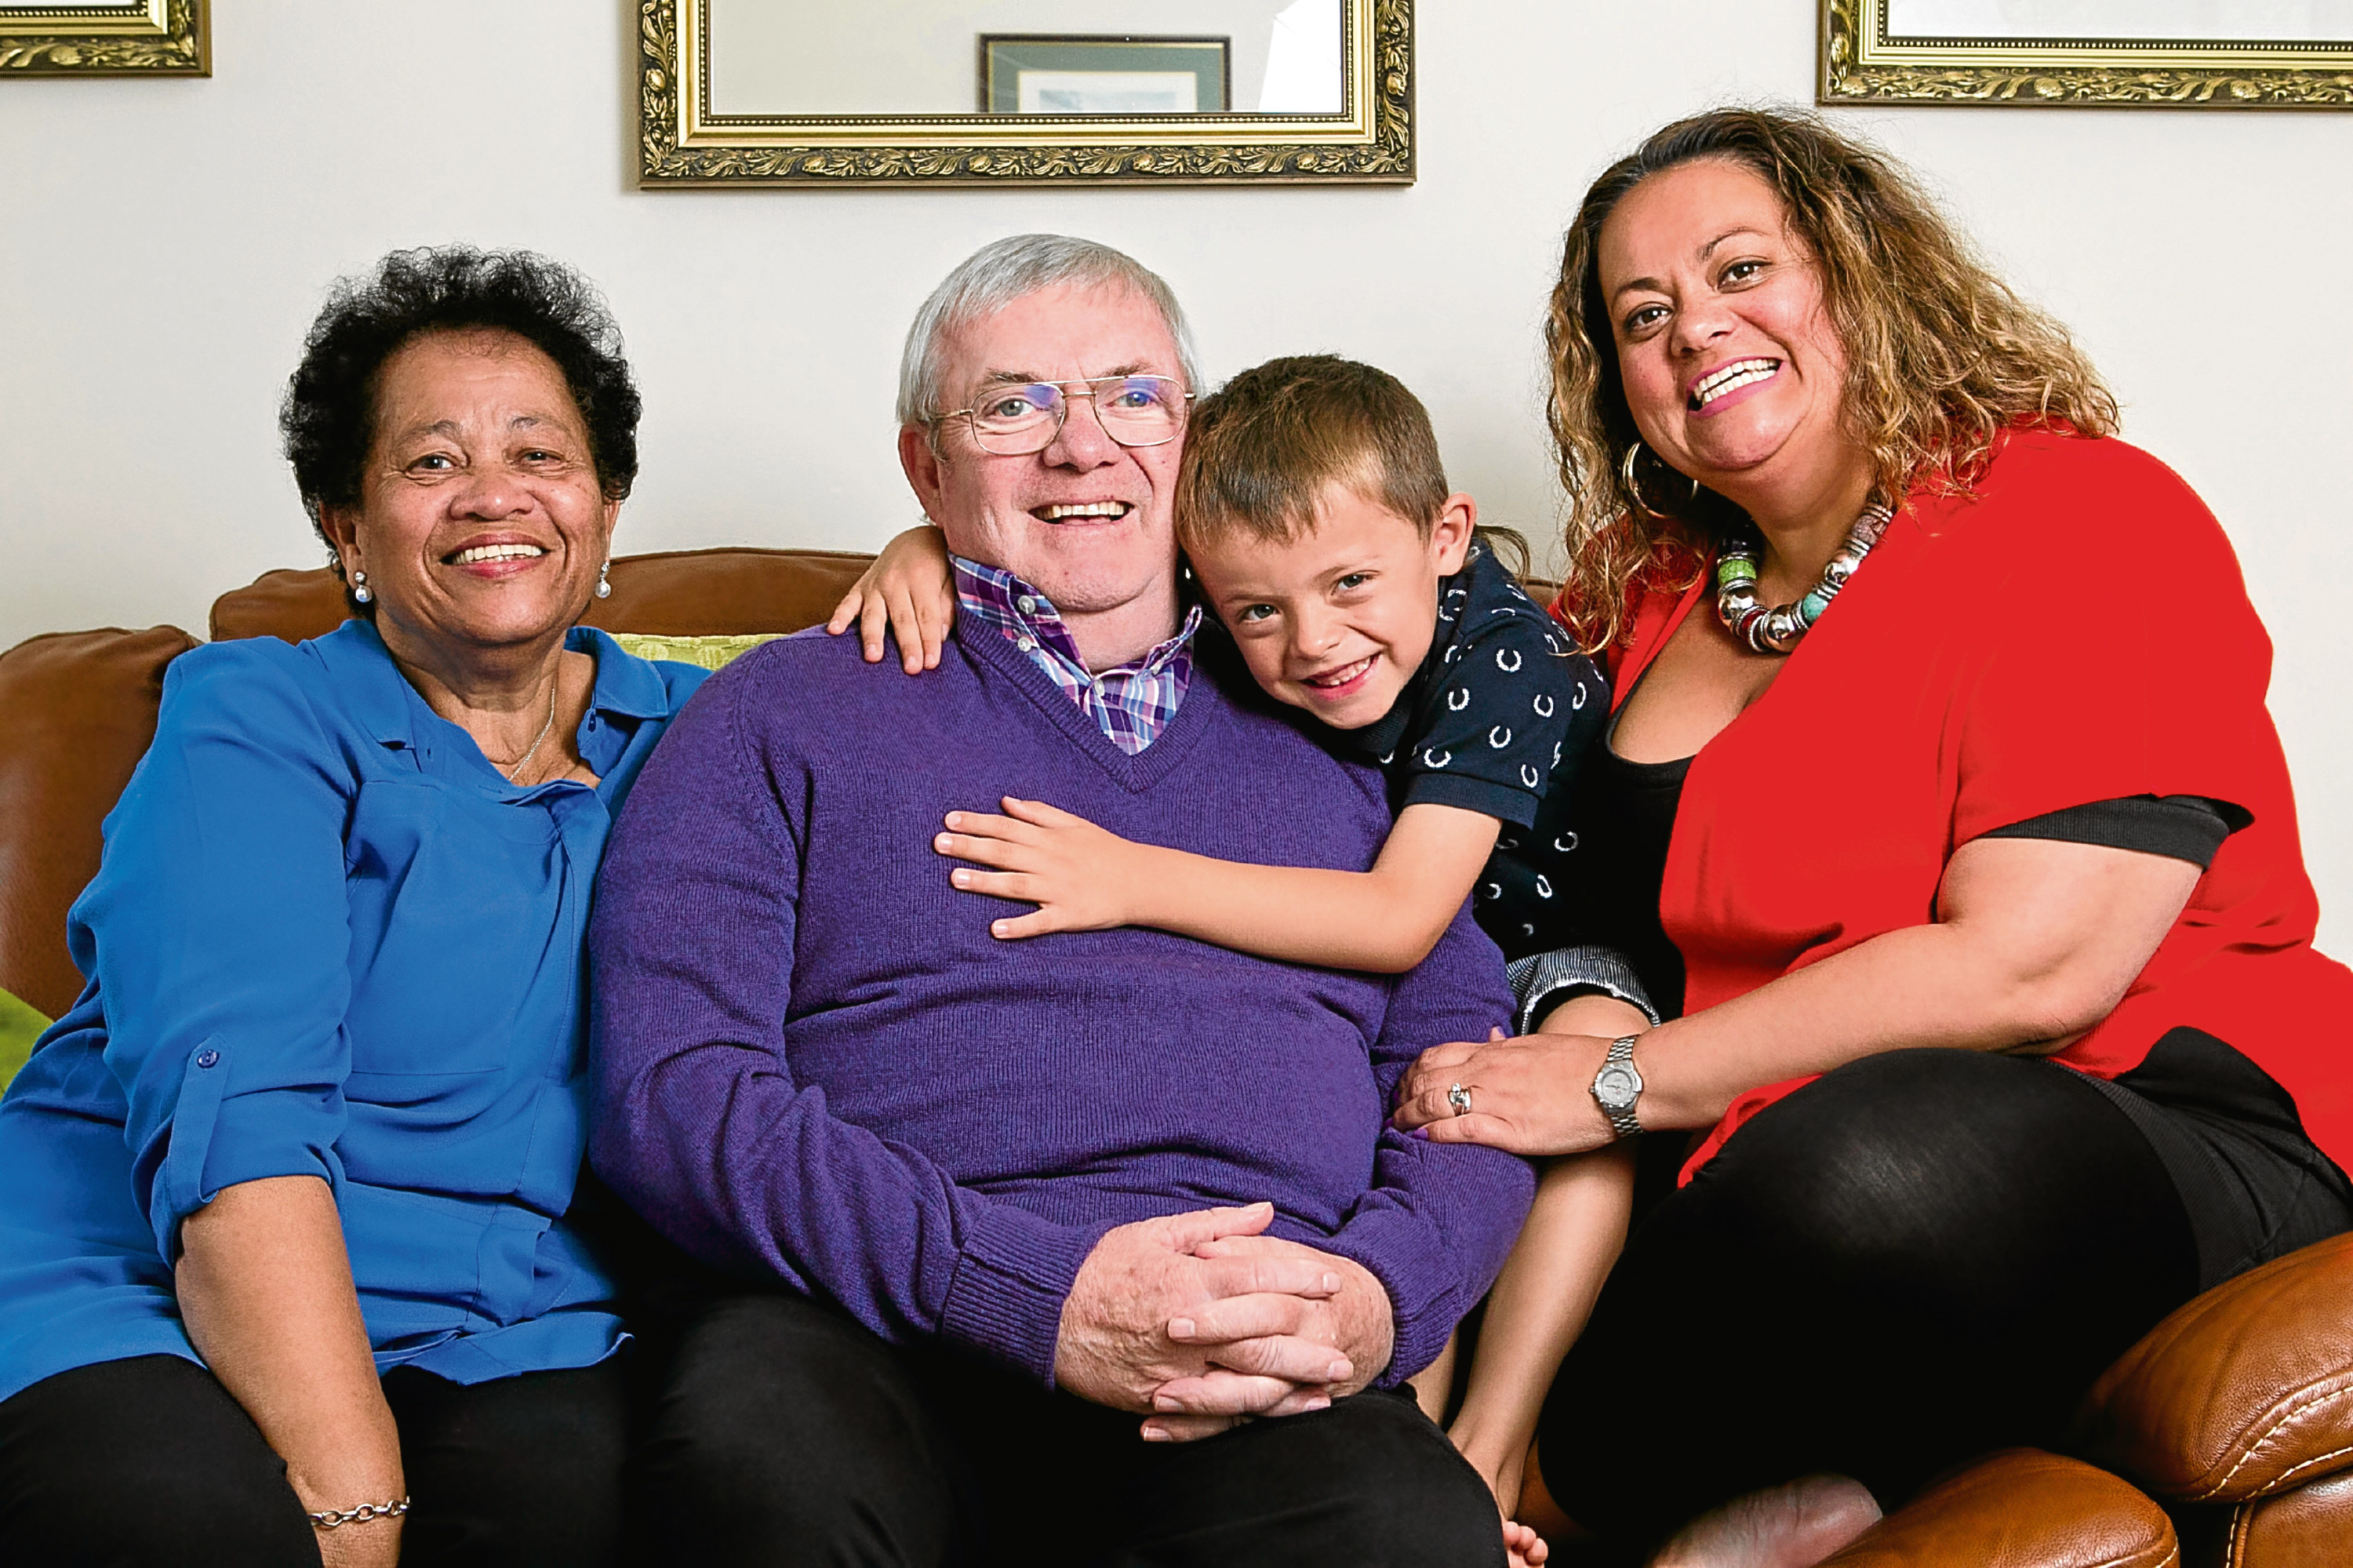 Natasha Collins, with her son Iggy, and parents, John and Jane. John has early on set Dementia, so Natasha decided to move into the flat below them to look after him (Andrew Cawley, Sunday Post)